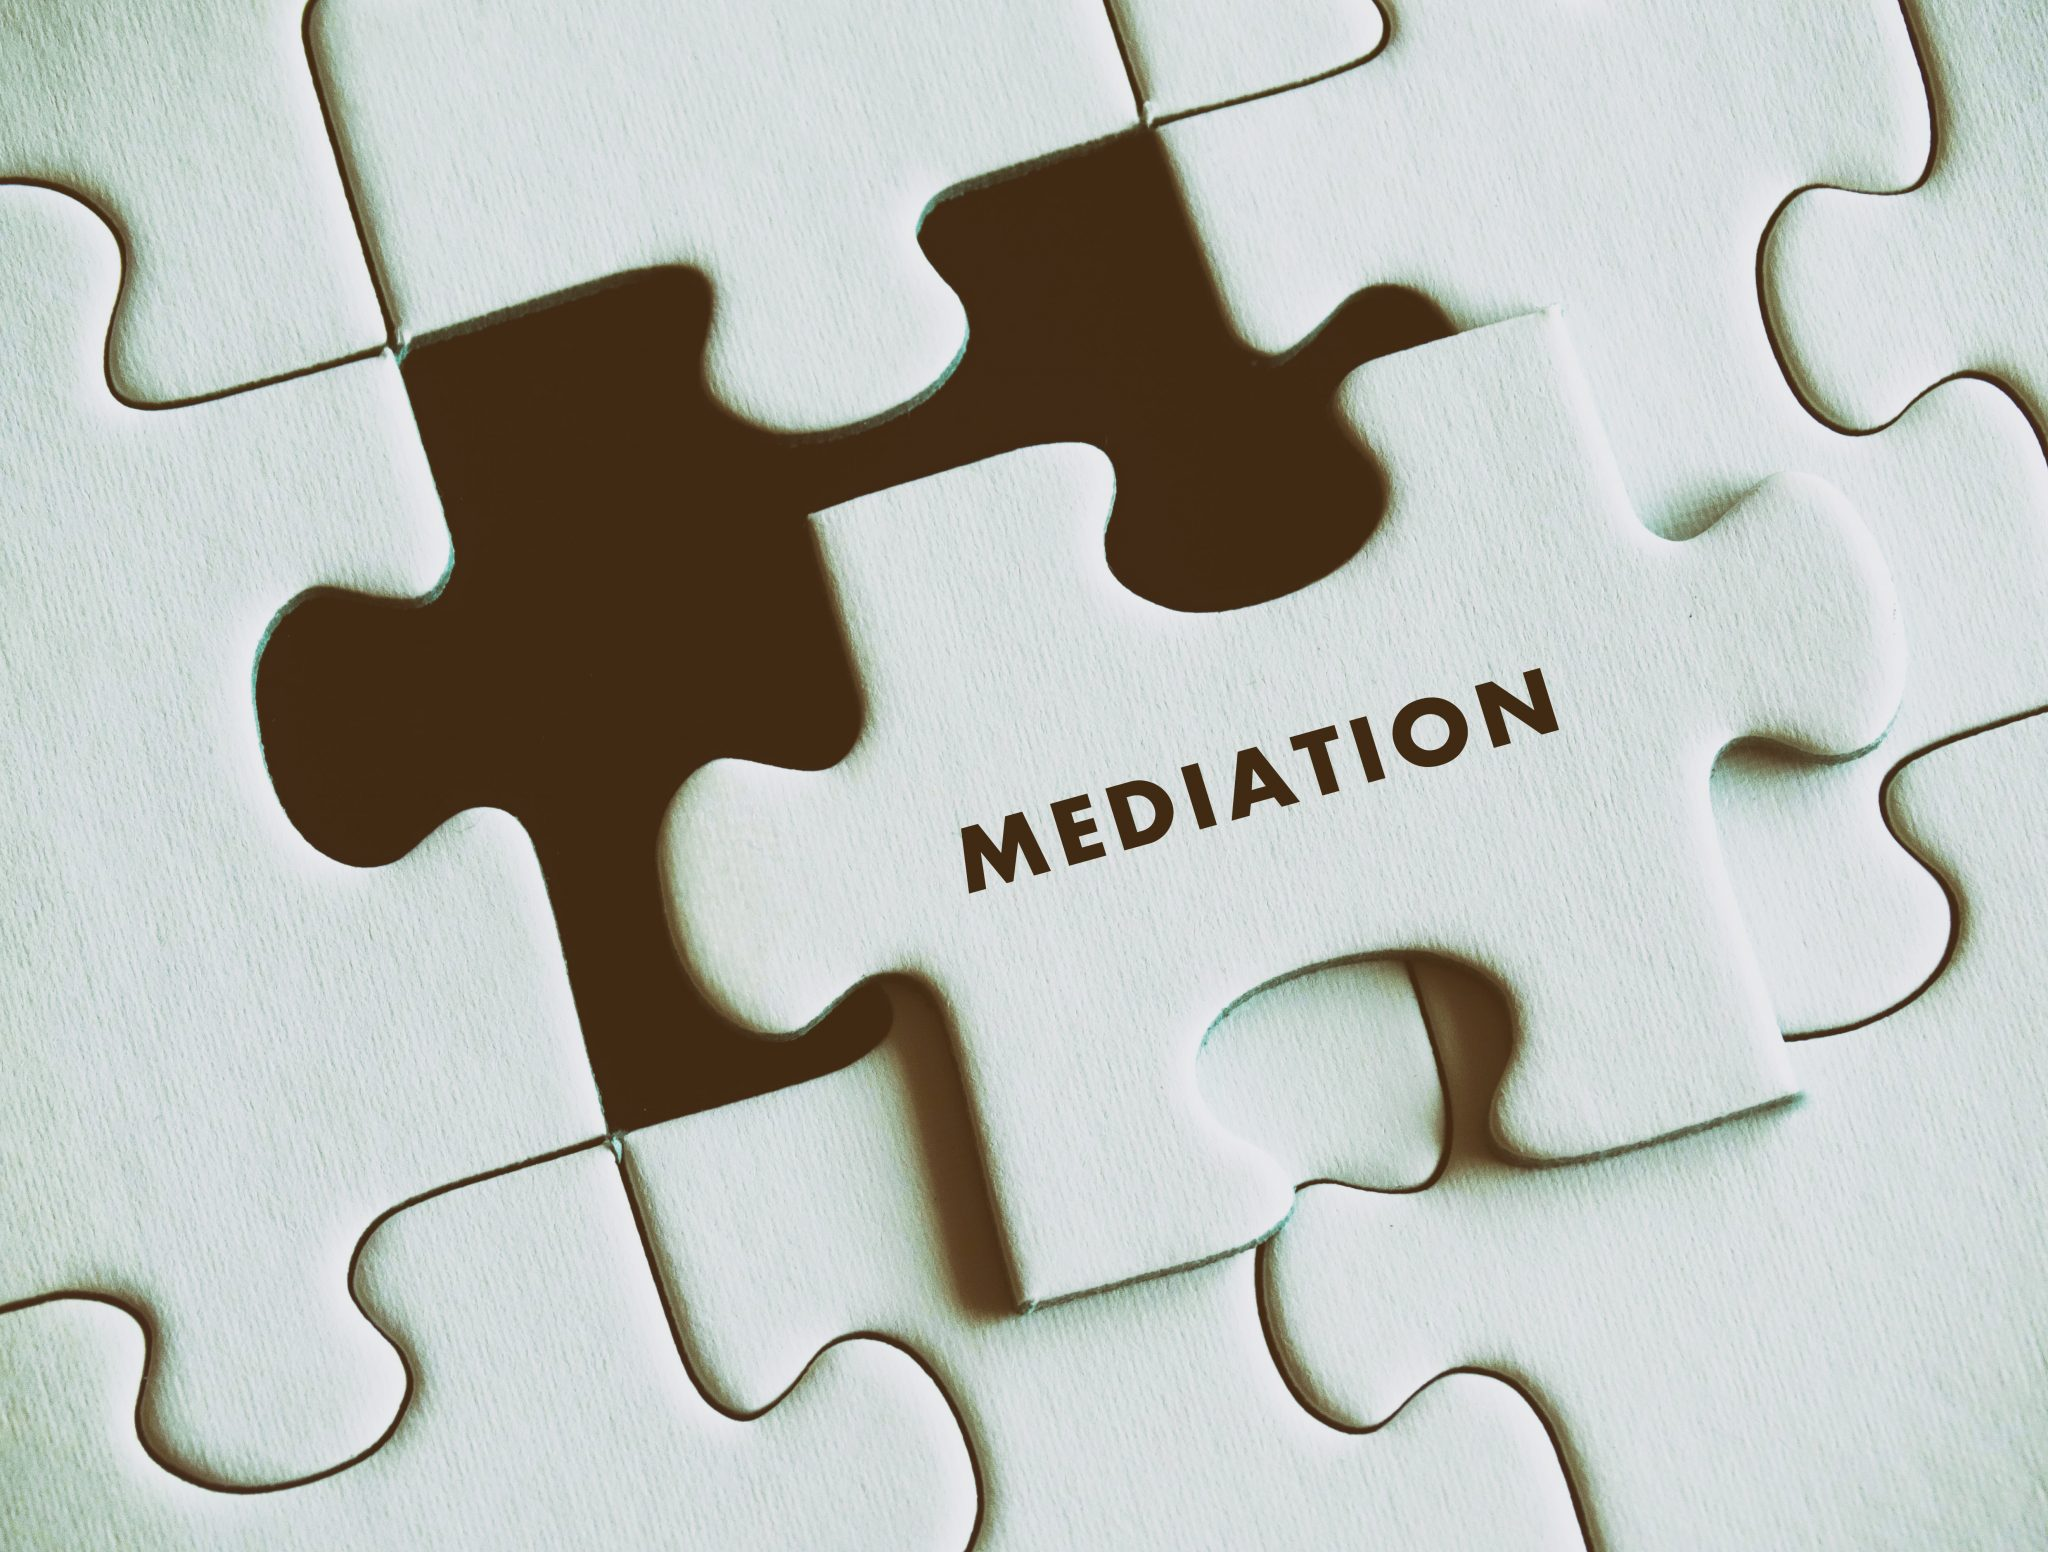 Mediation law puzzle concept.